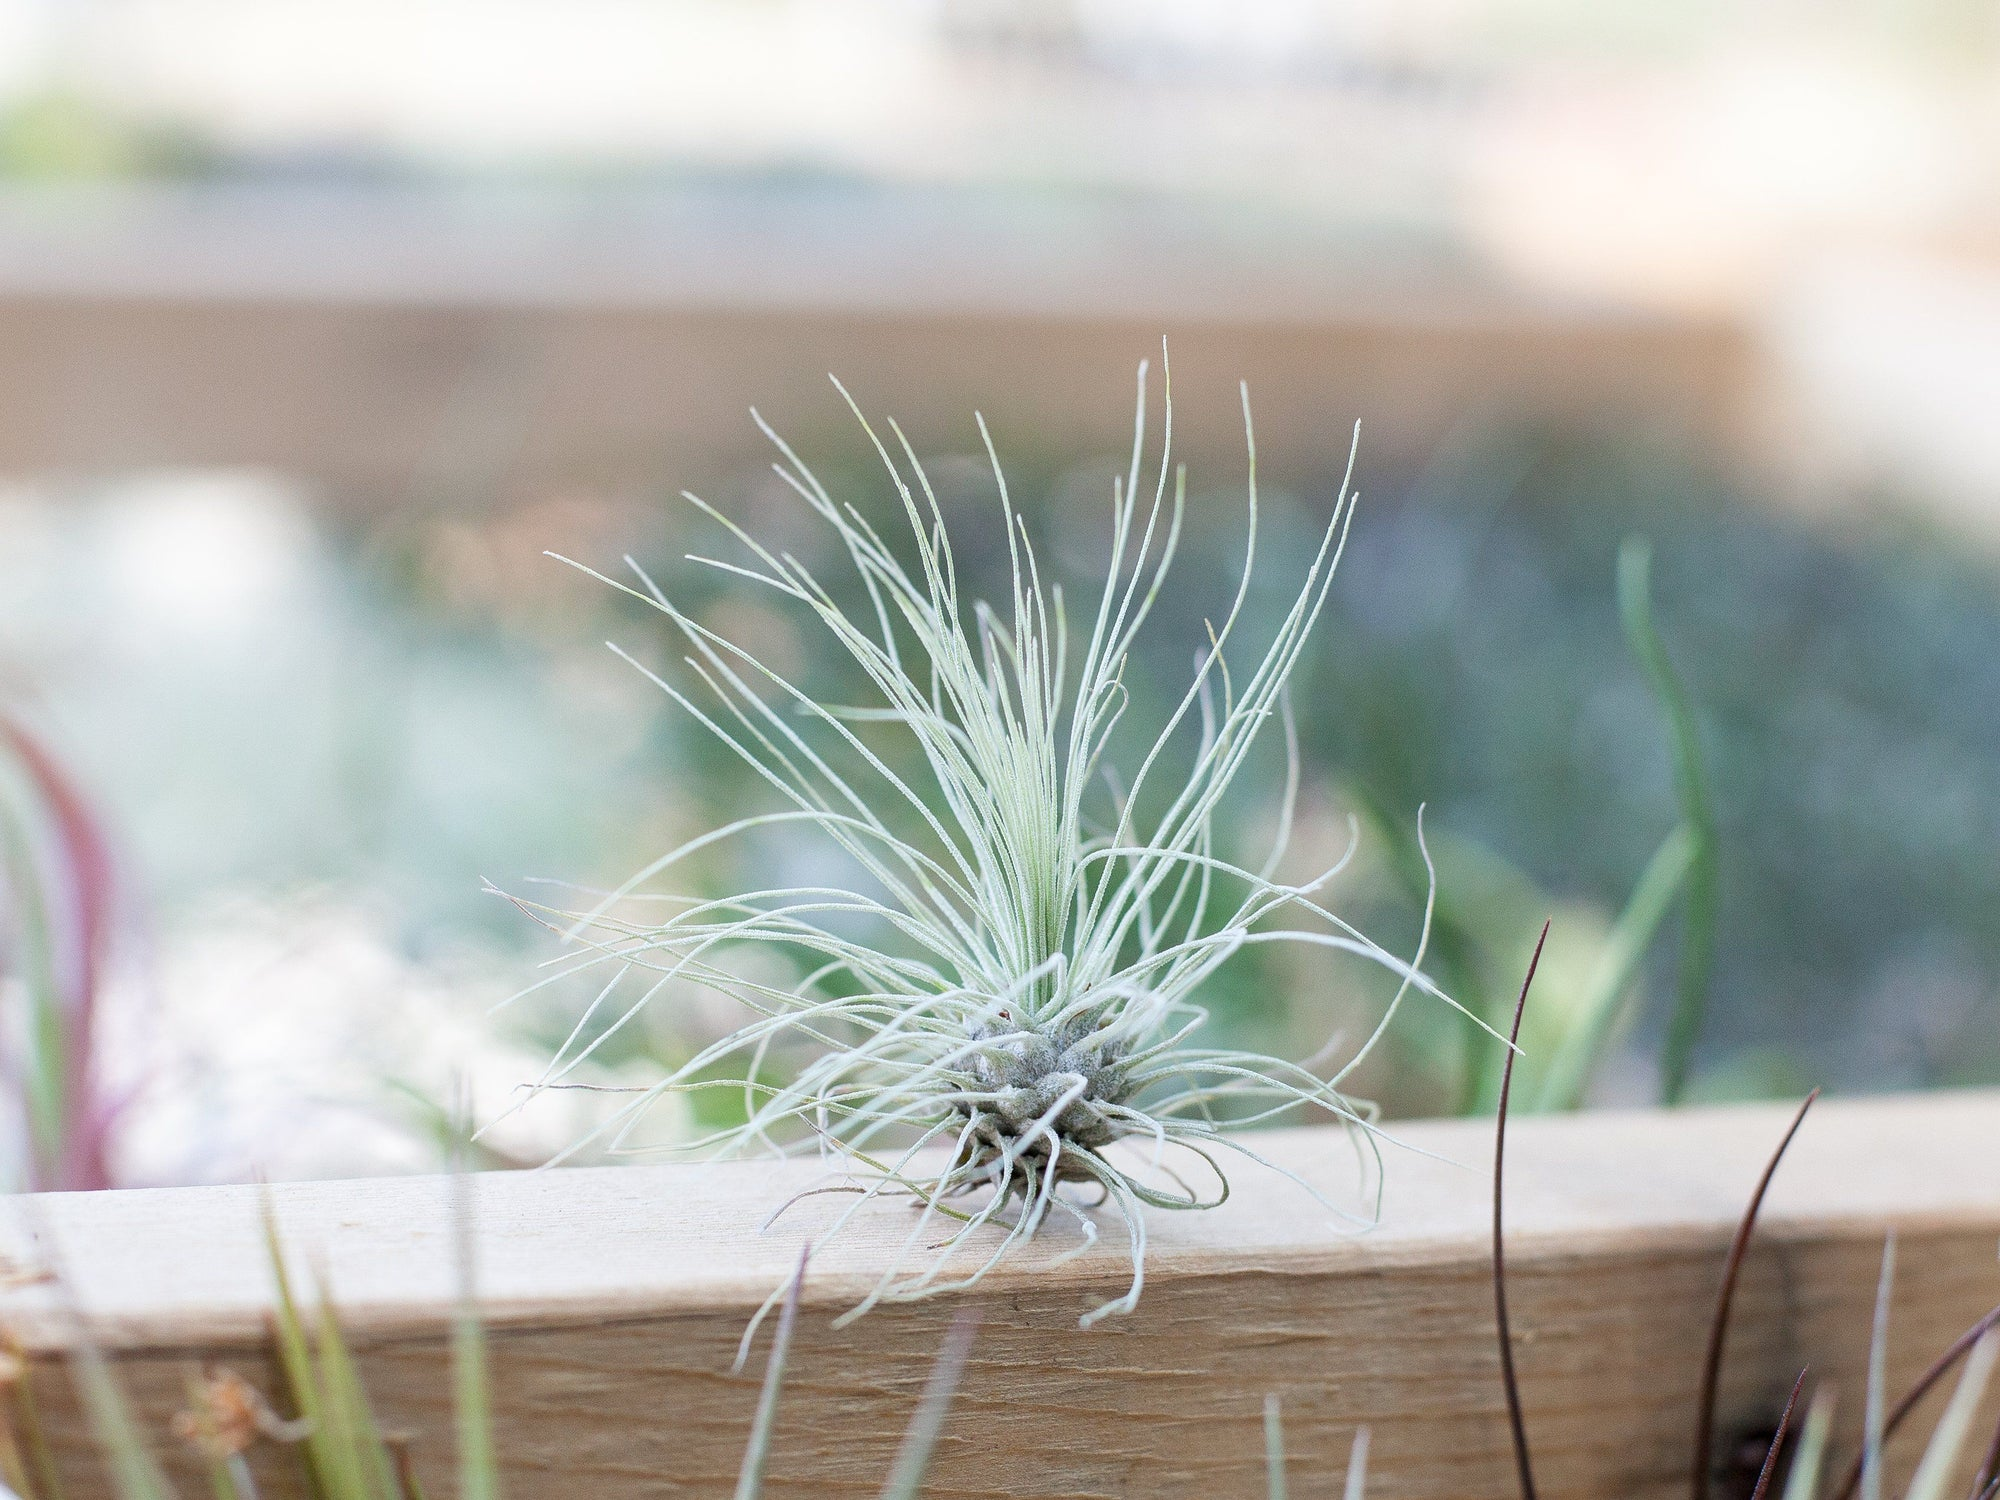 Watering Your Air Plants: Misting